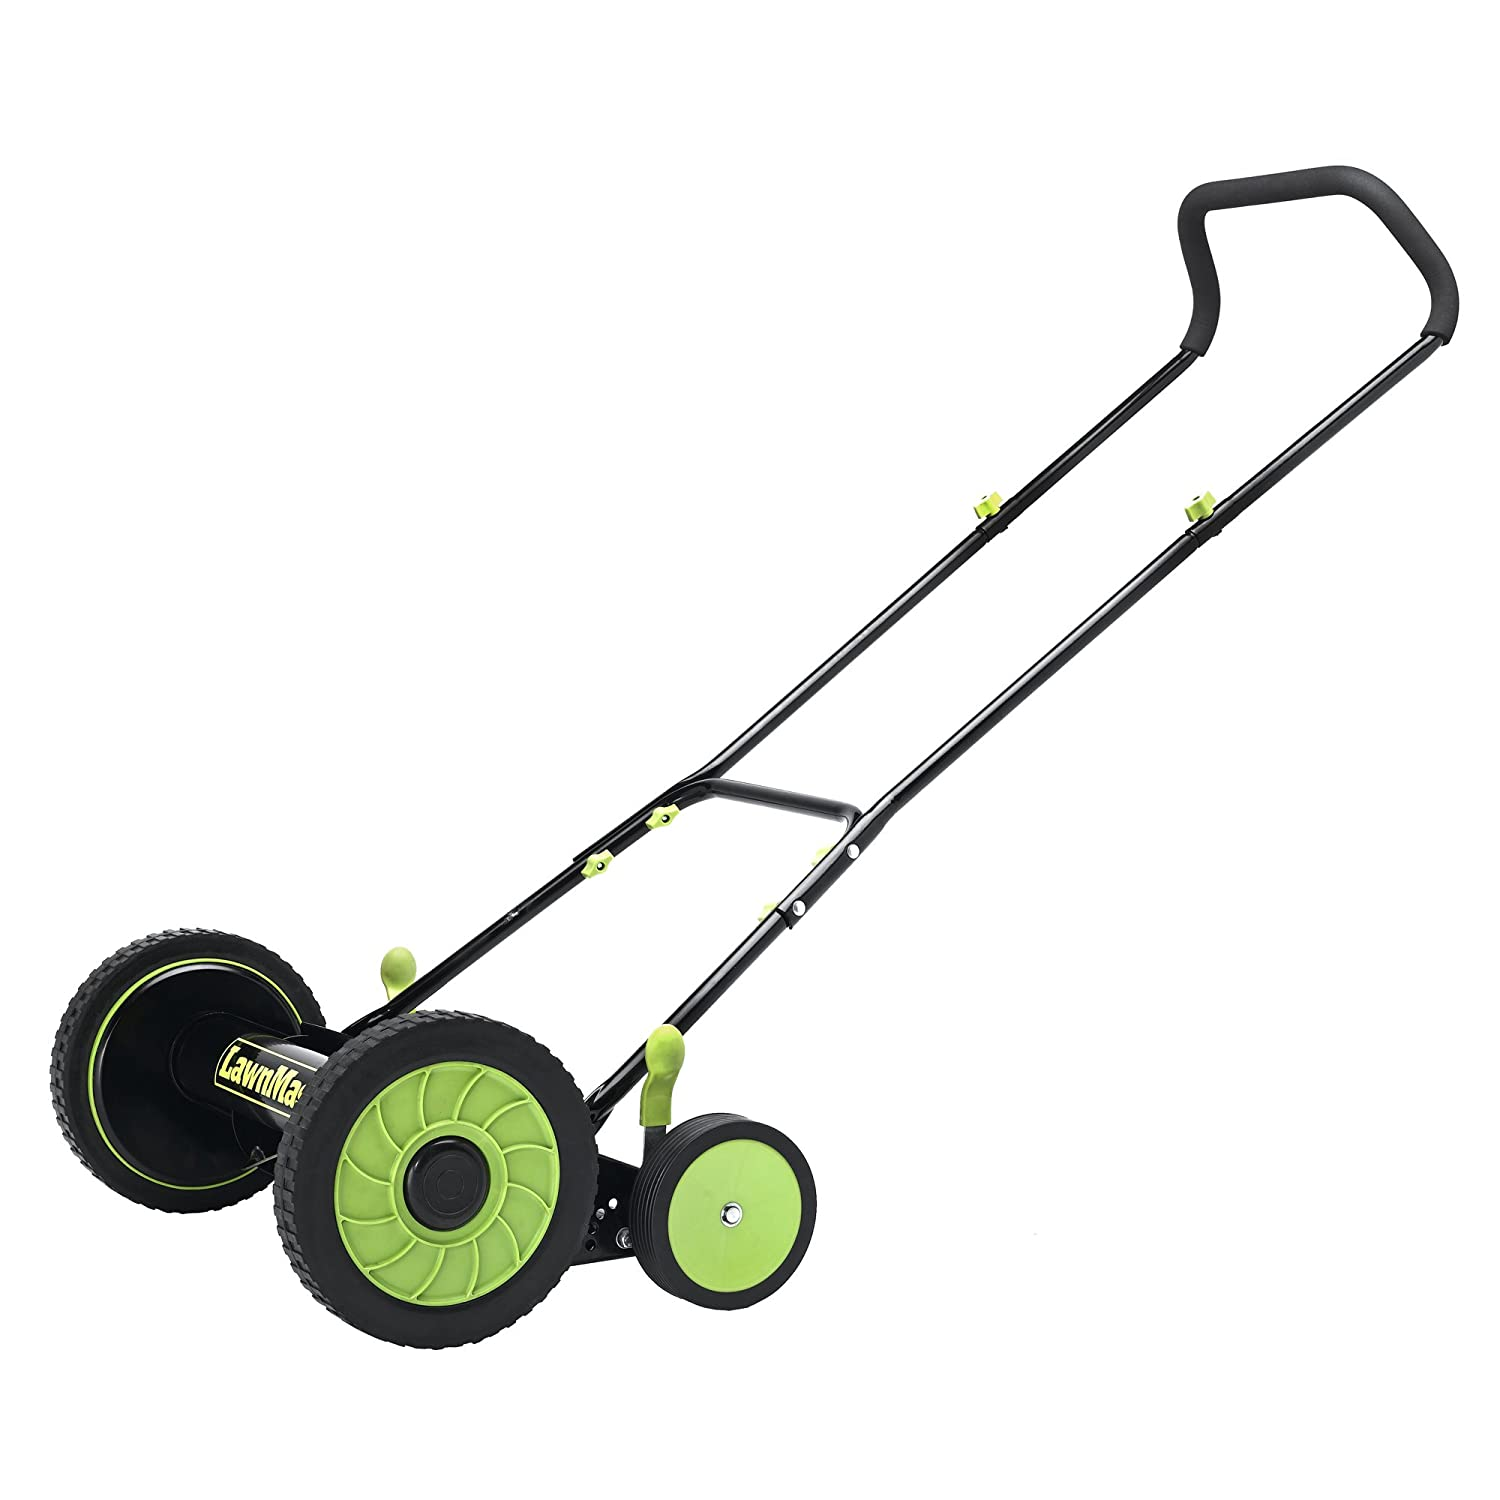 LawnMaster LMRM1601 Reel Mower, 16-Inch Cleva North America L&G